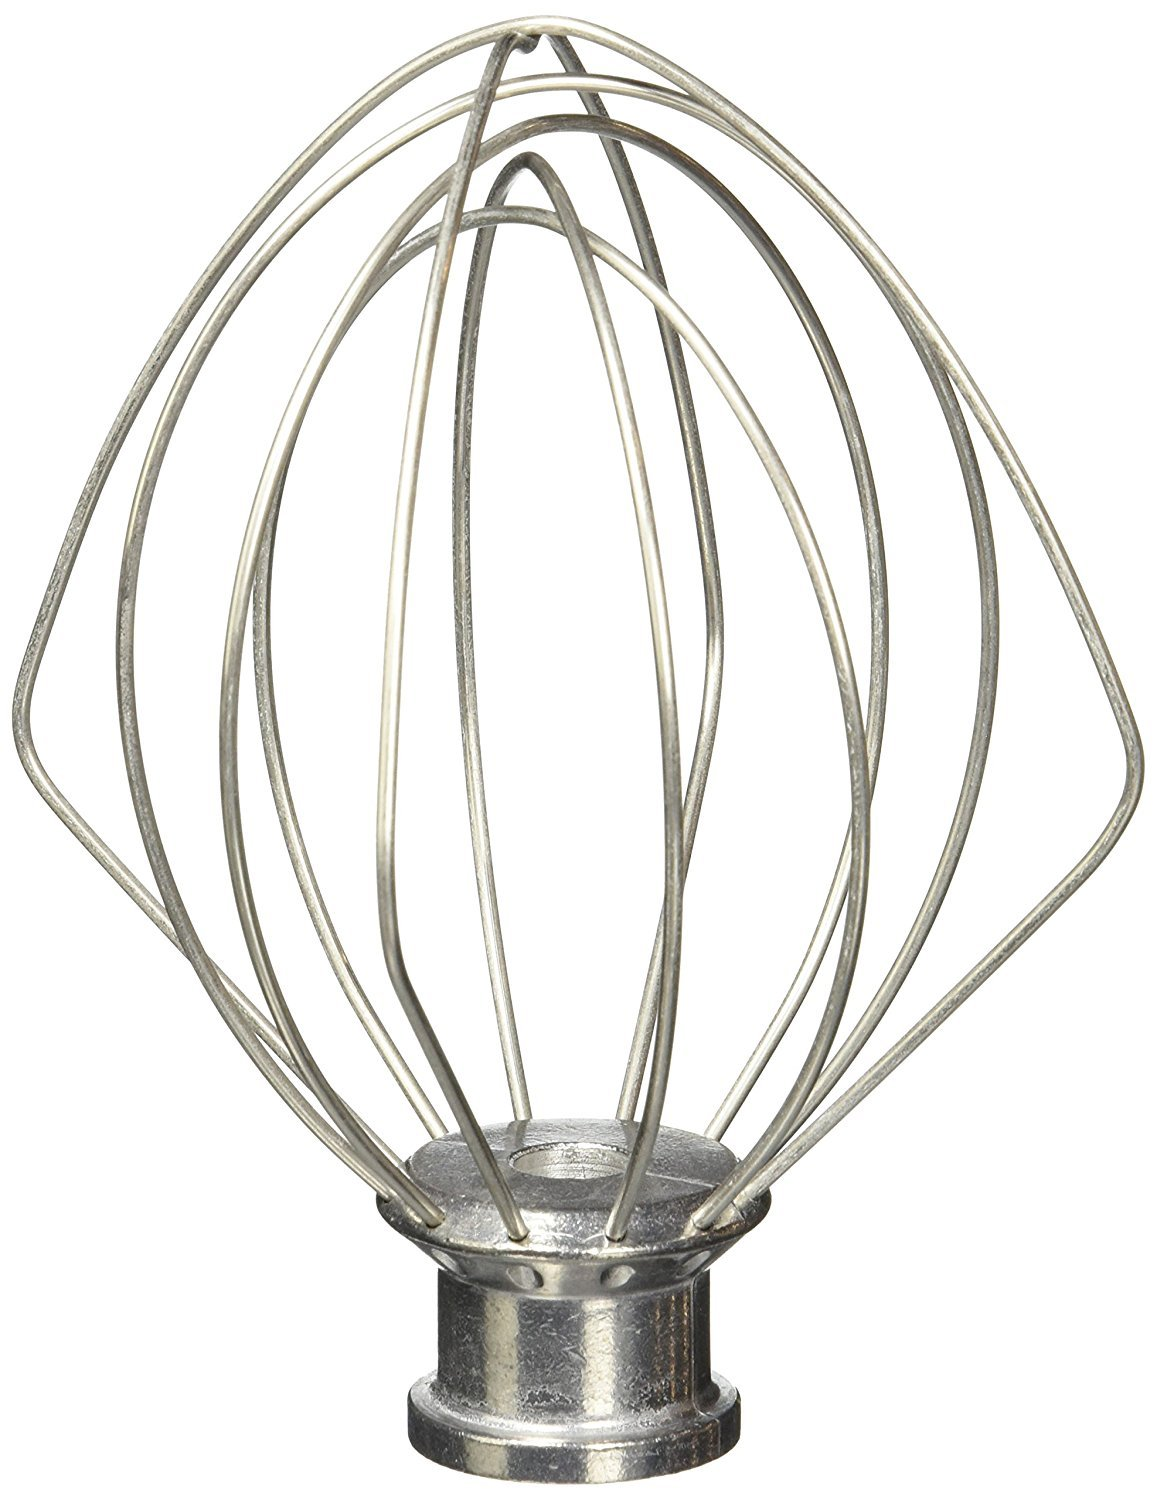 PAKIMARK K45WW Wire Whip for Tilt-Head Stand Mixer for KitchenAid, Stainless Steel Egg Cream Stirrer, Flour Cake Balloon Whisk, Easy for Kitchen and Life by PAKIMARK (Image #5)